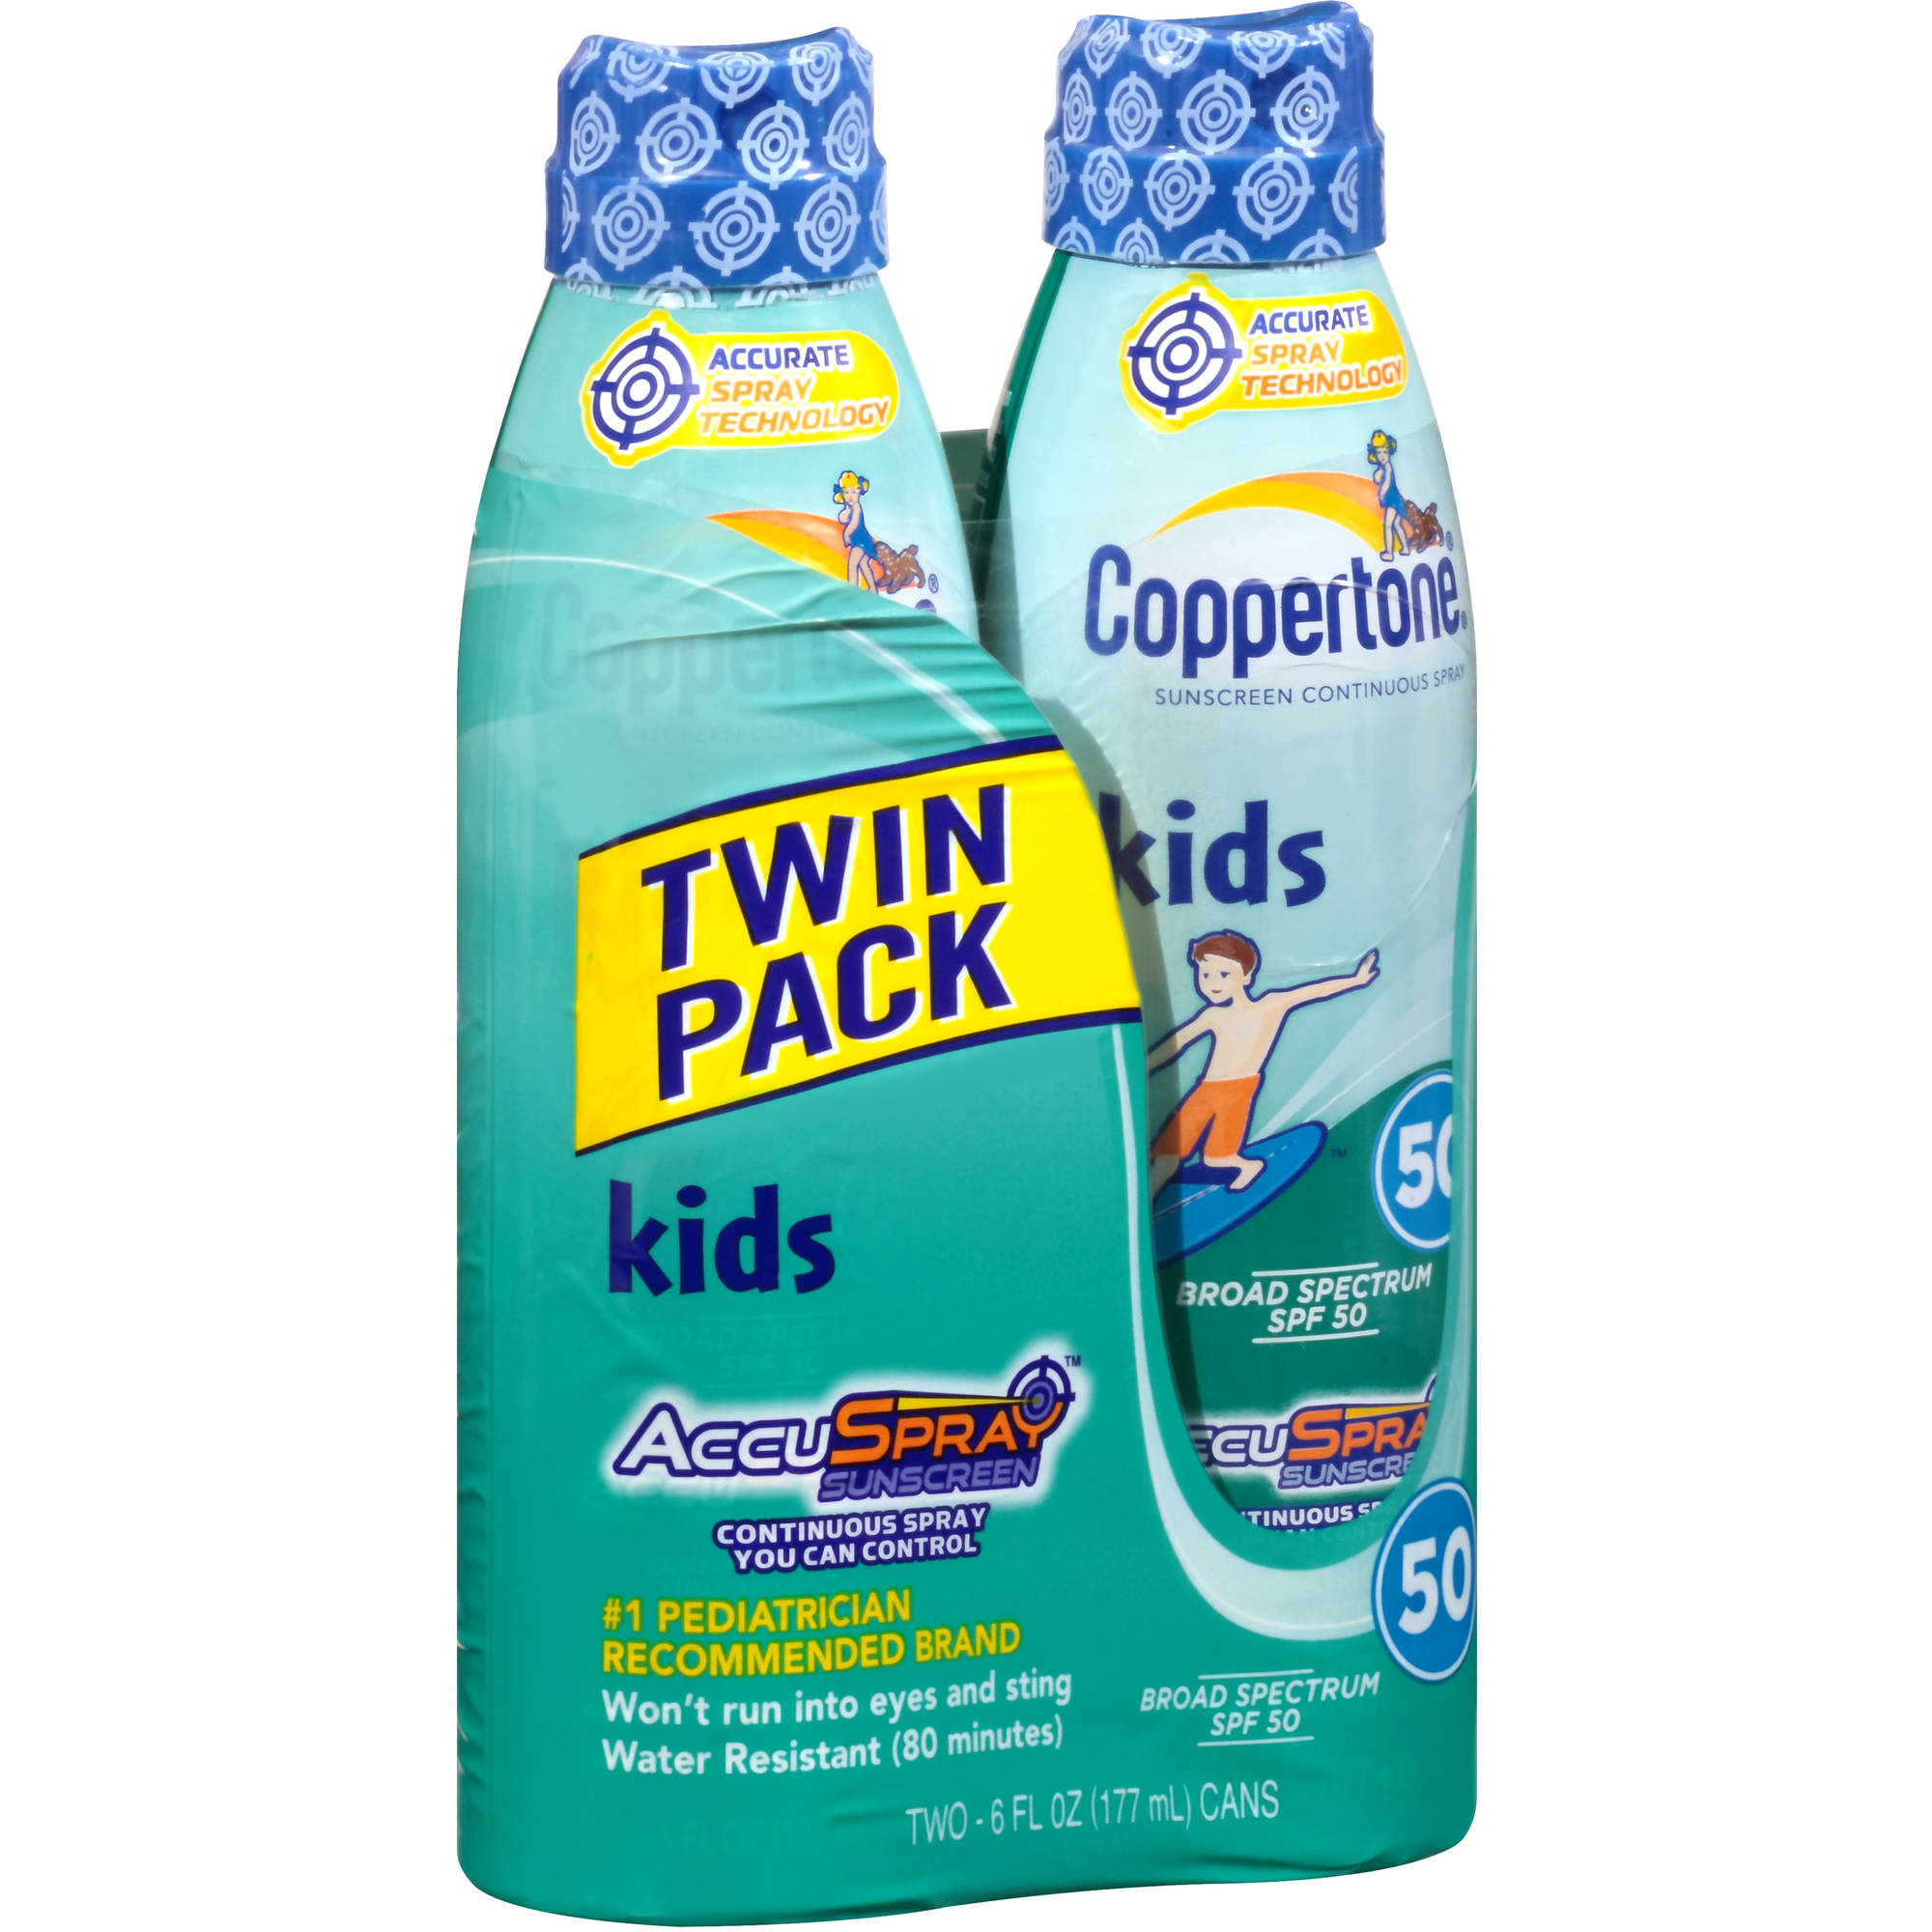 Coppertone Kids Continuous Spray Sunscreen, SPF 50, 6 fl oz, (Pack of 2)